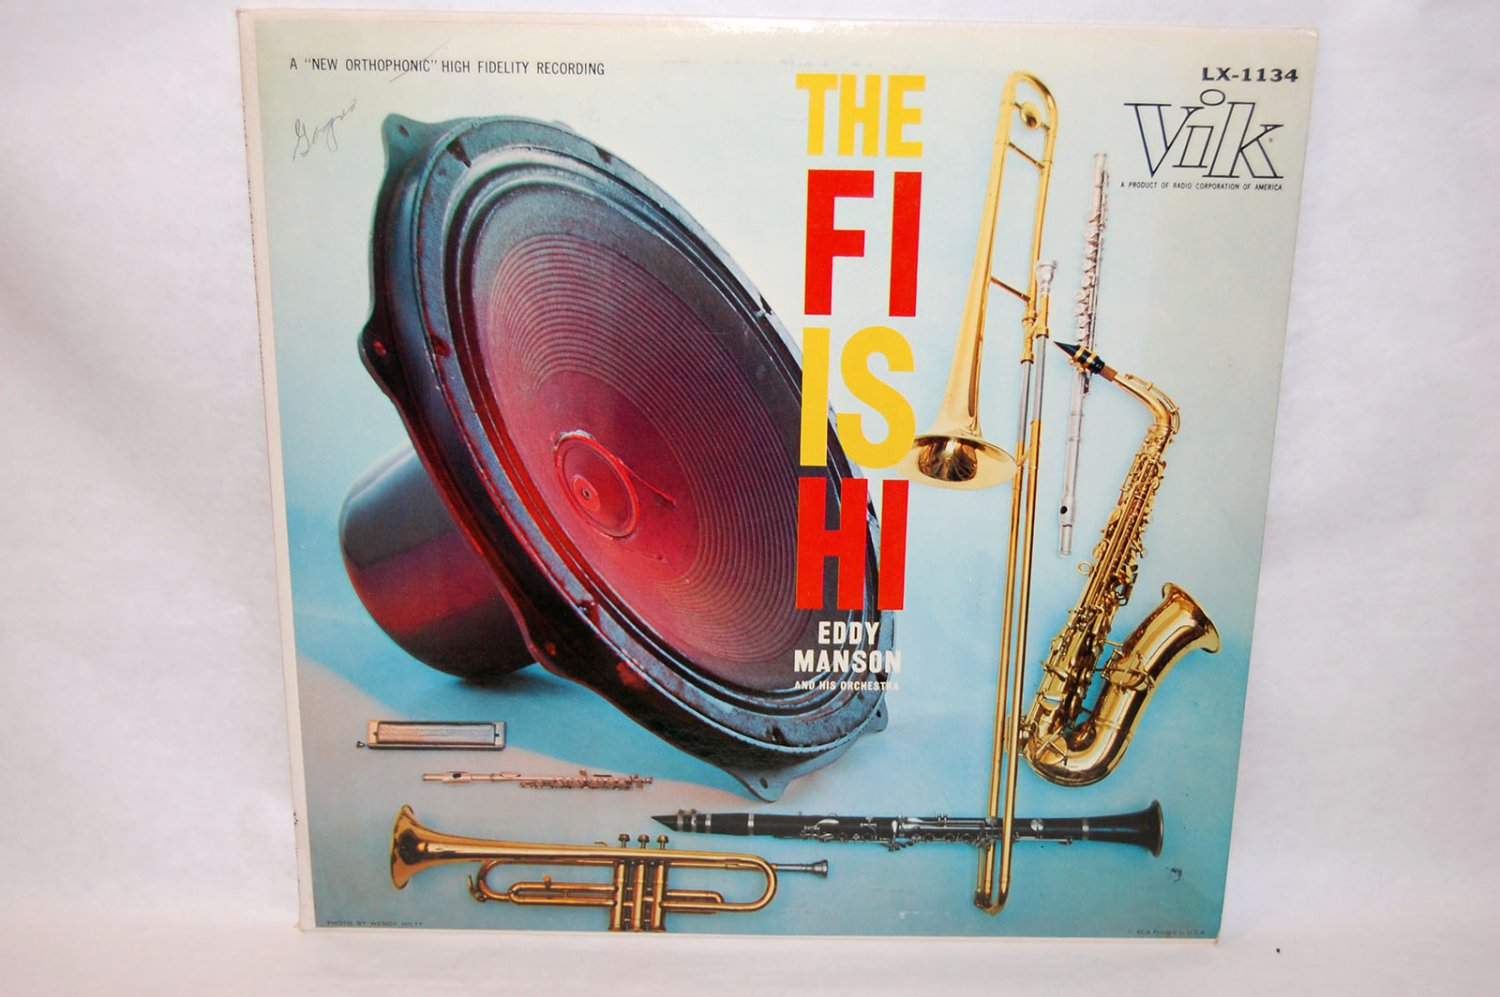 "EDDY MANSON & ORCHESTRA The Fi Is Hi 12"" Vinyl LP Vik"